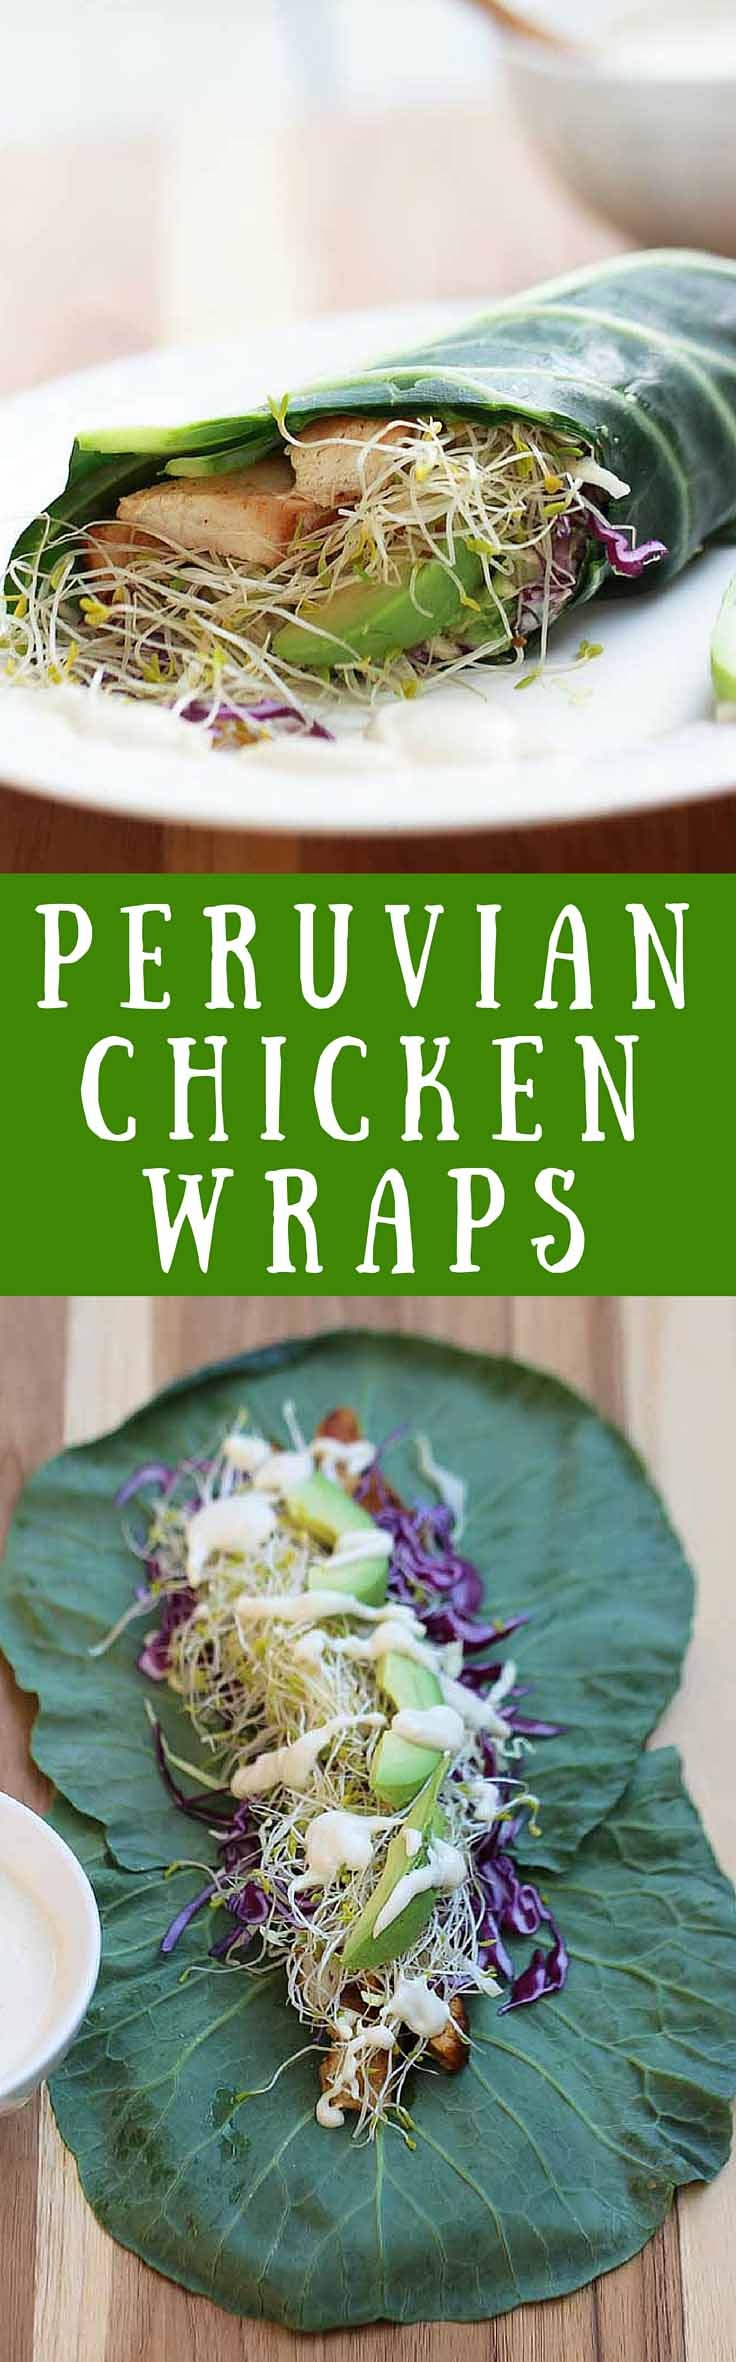 Peruvian Chicken Wraps – These wraps with marinated chicken and cashew lime sauce are delicious and can be made in less than 25 min. Easy and healthy!